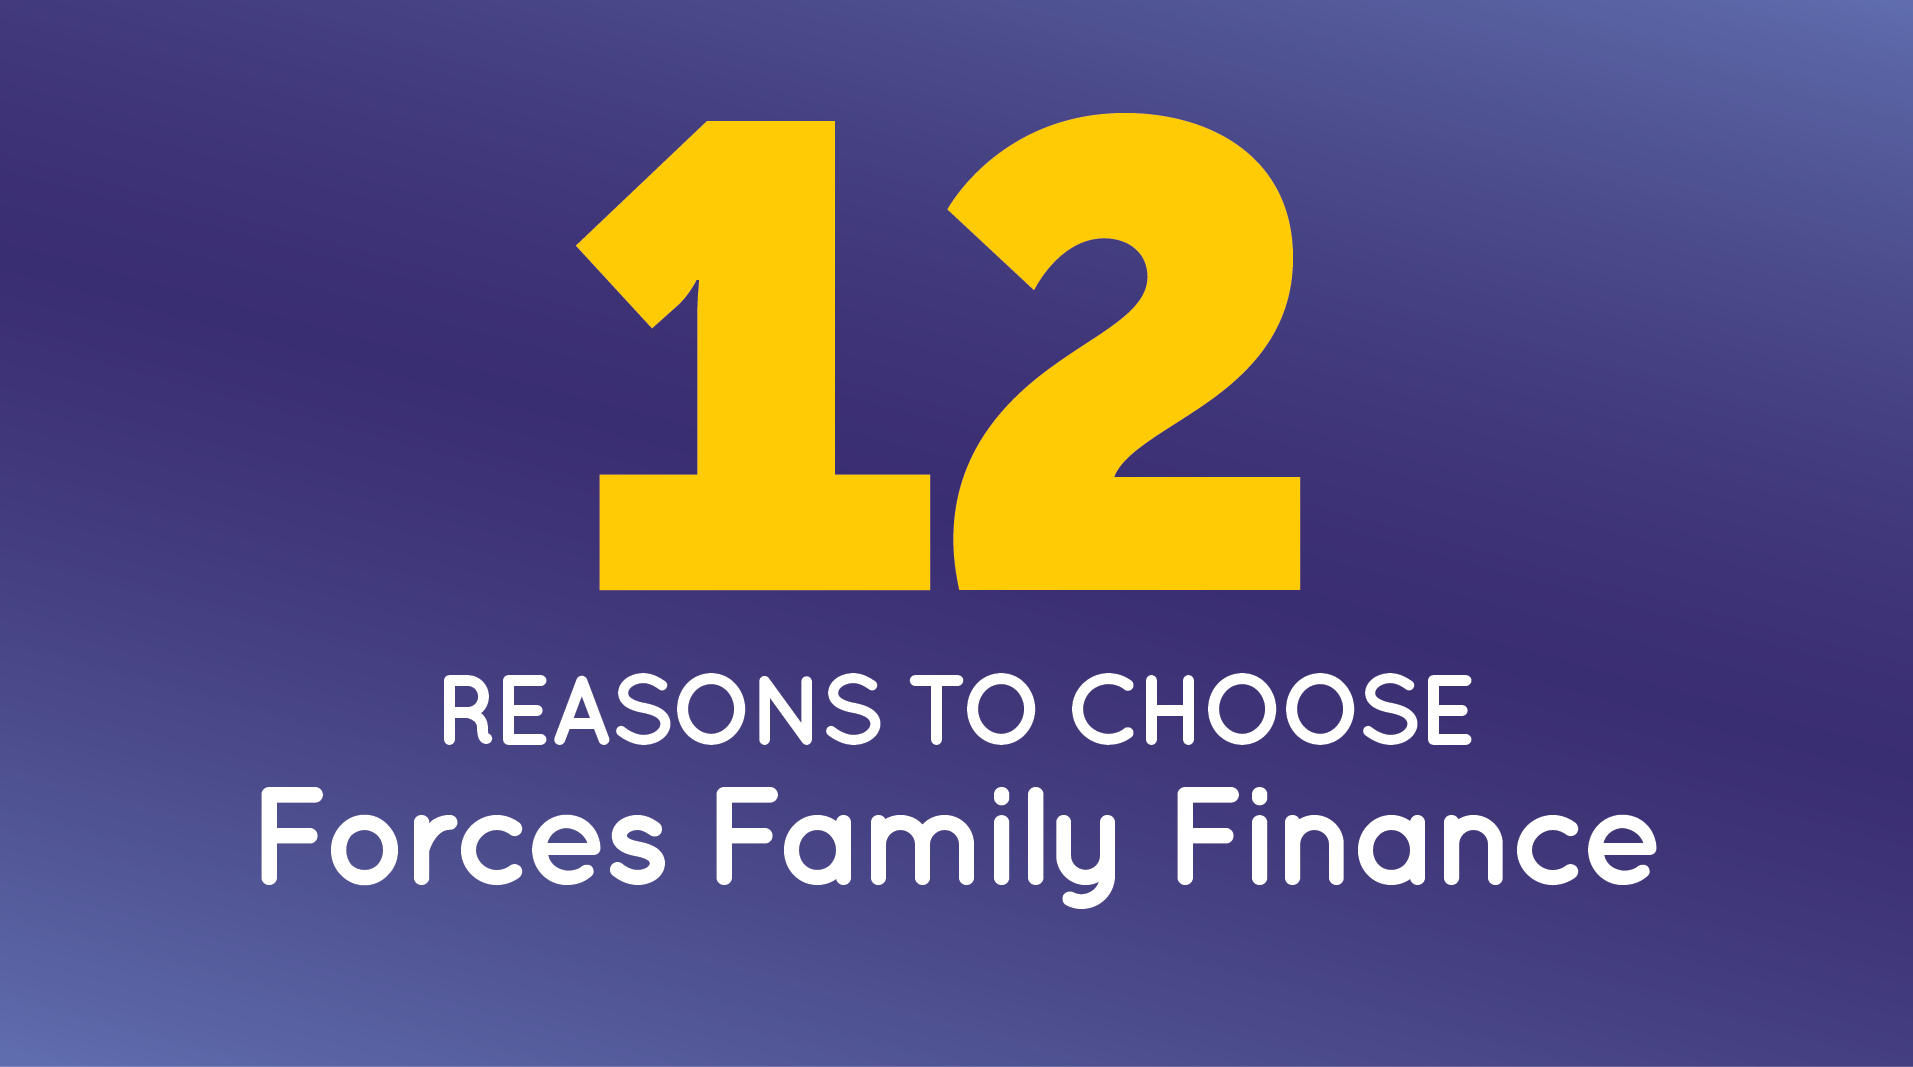 10 reasons to choose Forces Family Finance